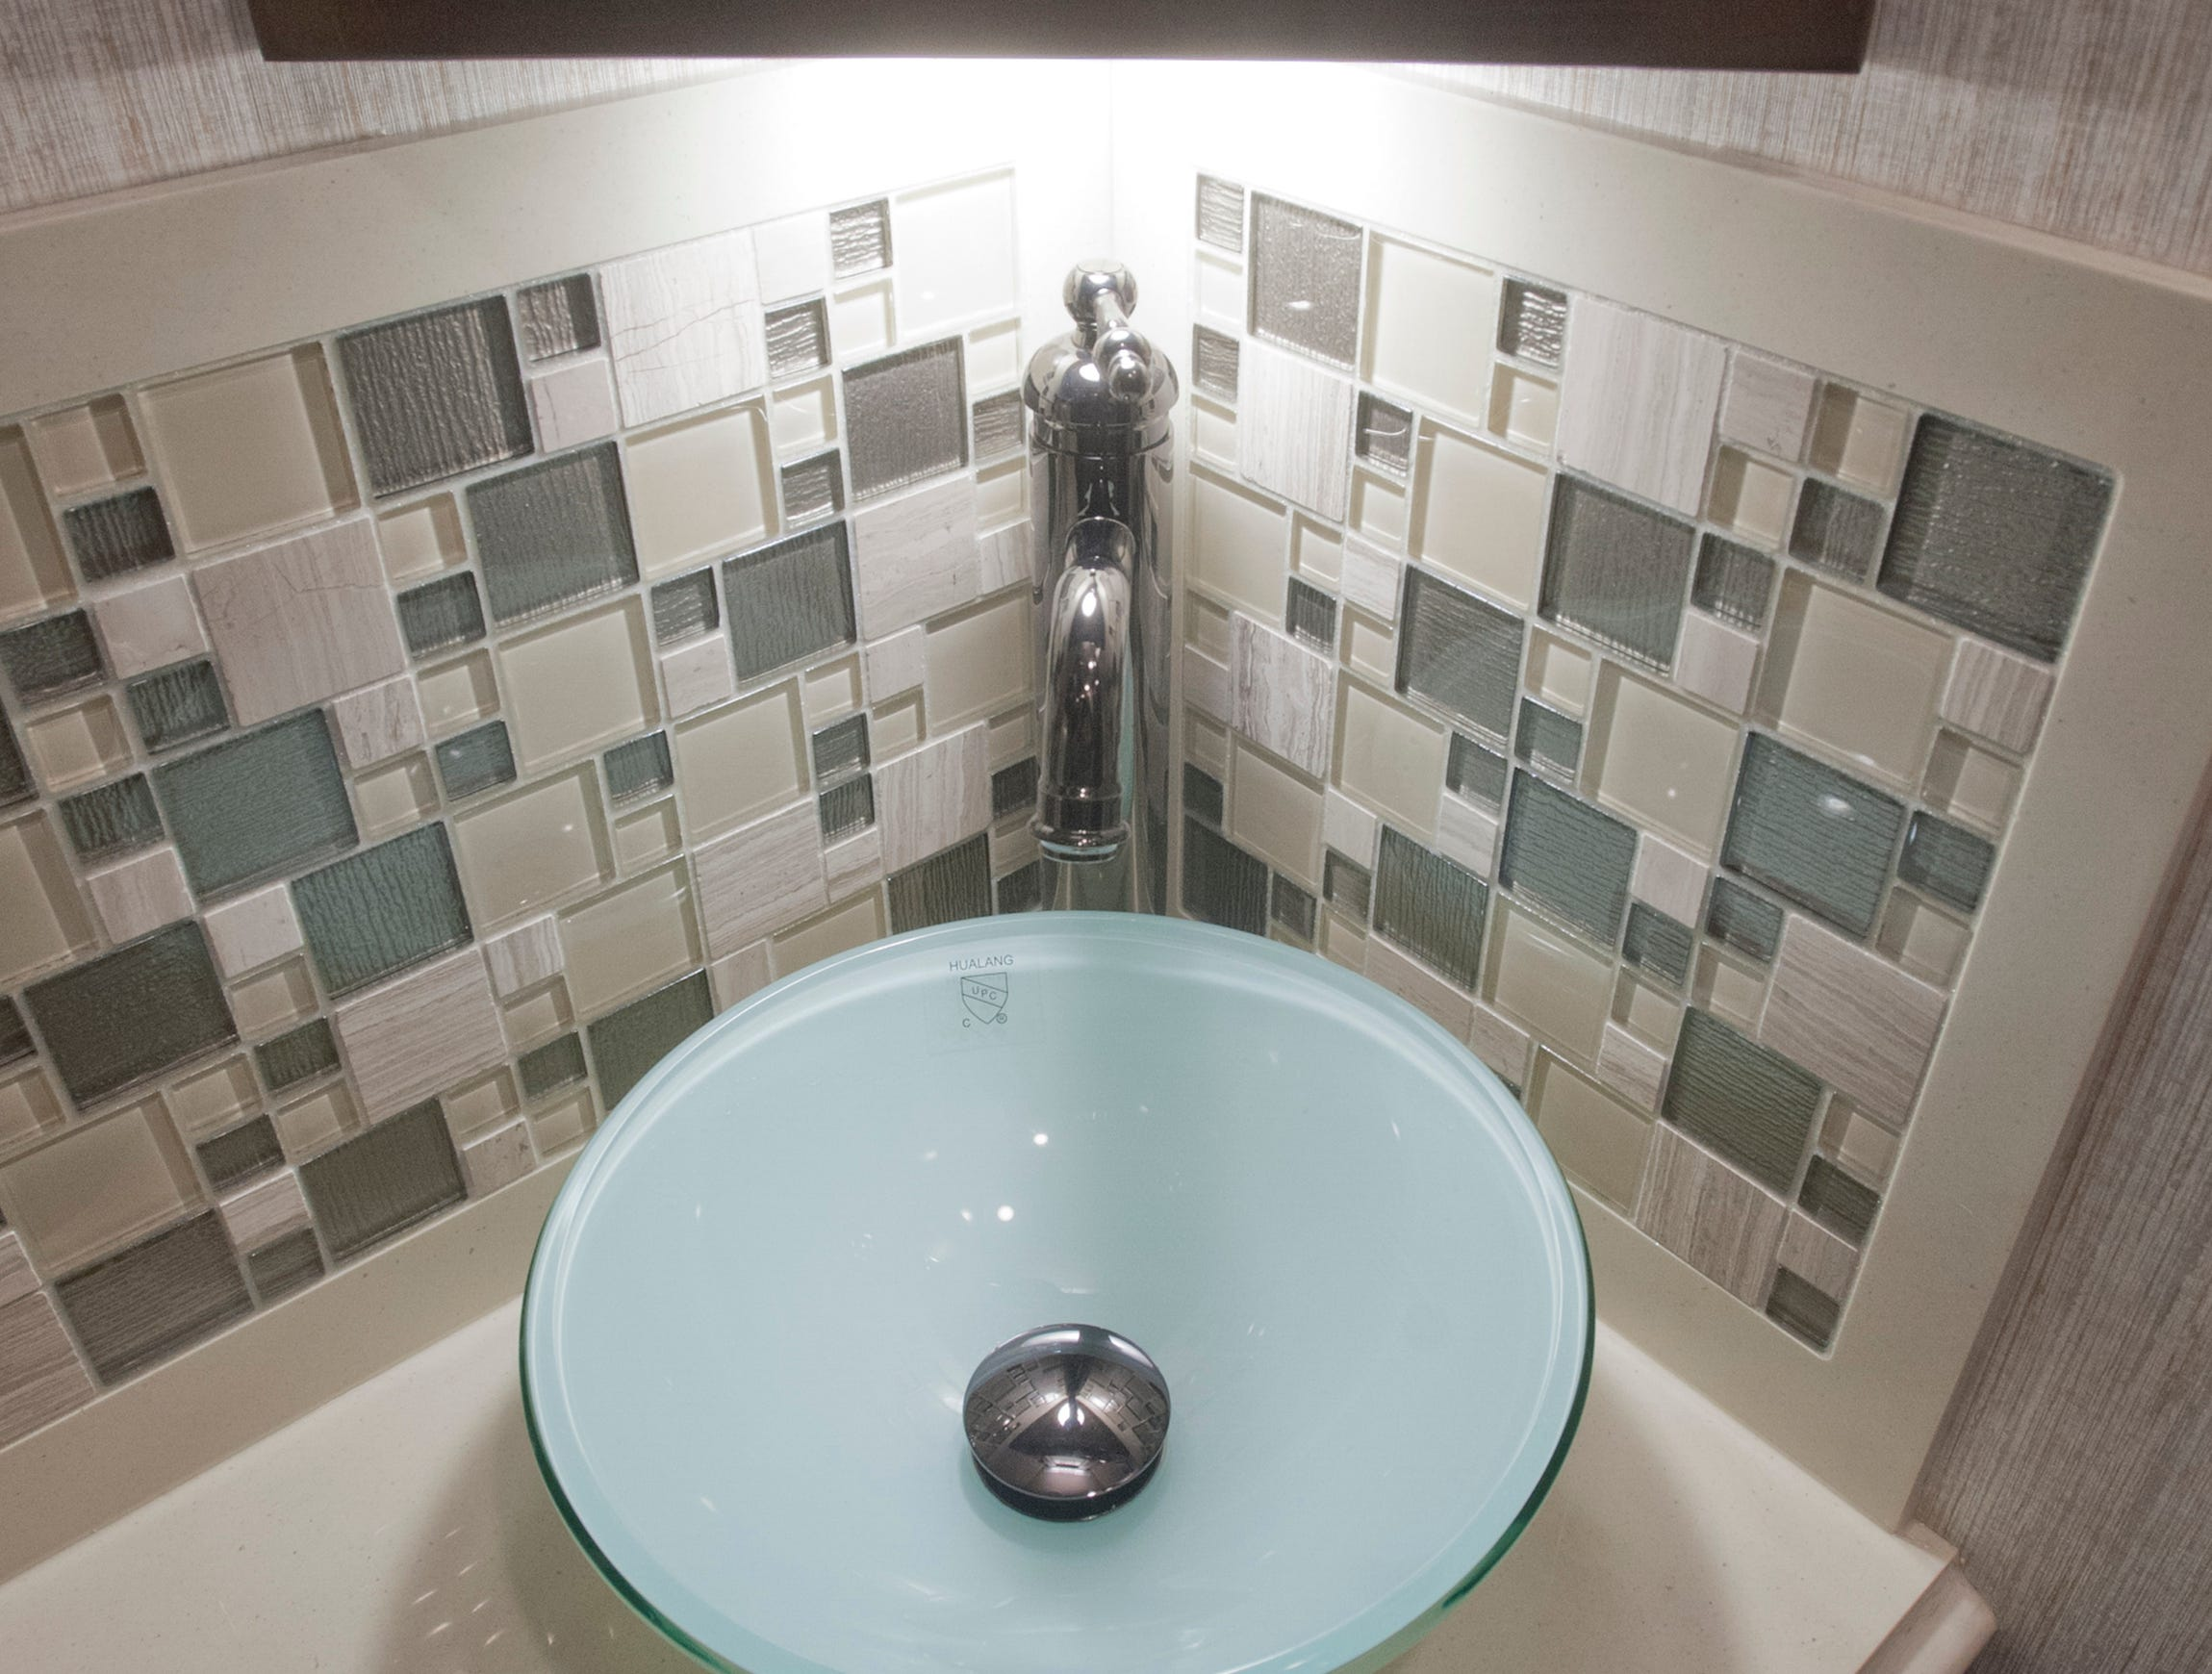 The half-bath includes this glass bowl sink.11 December 2018